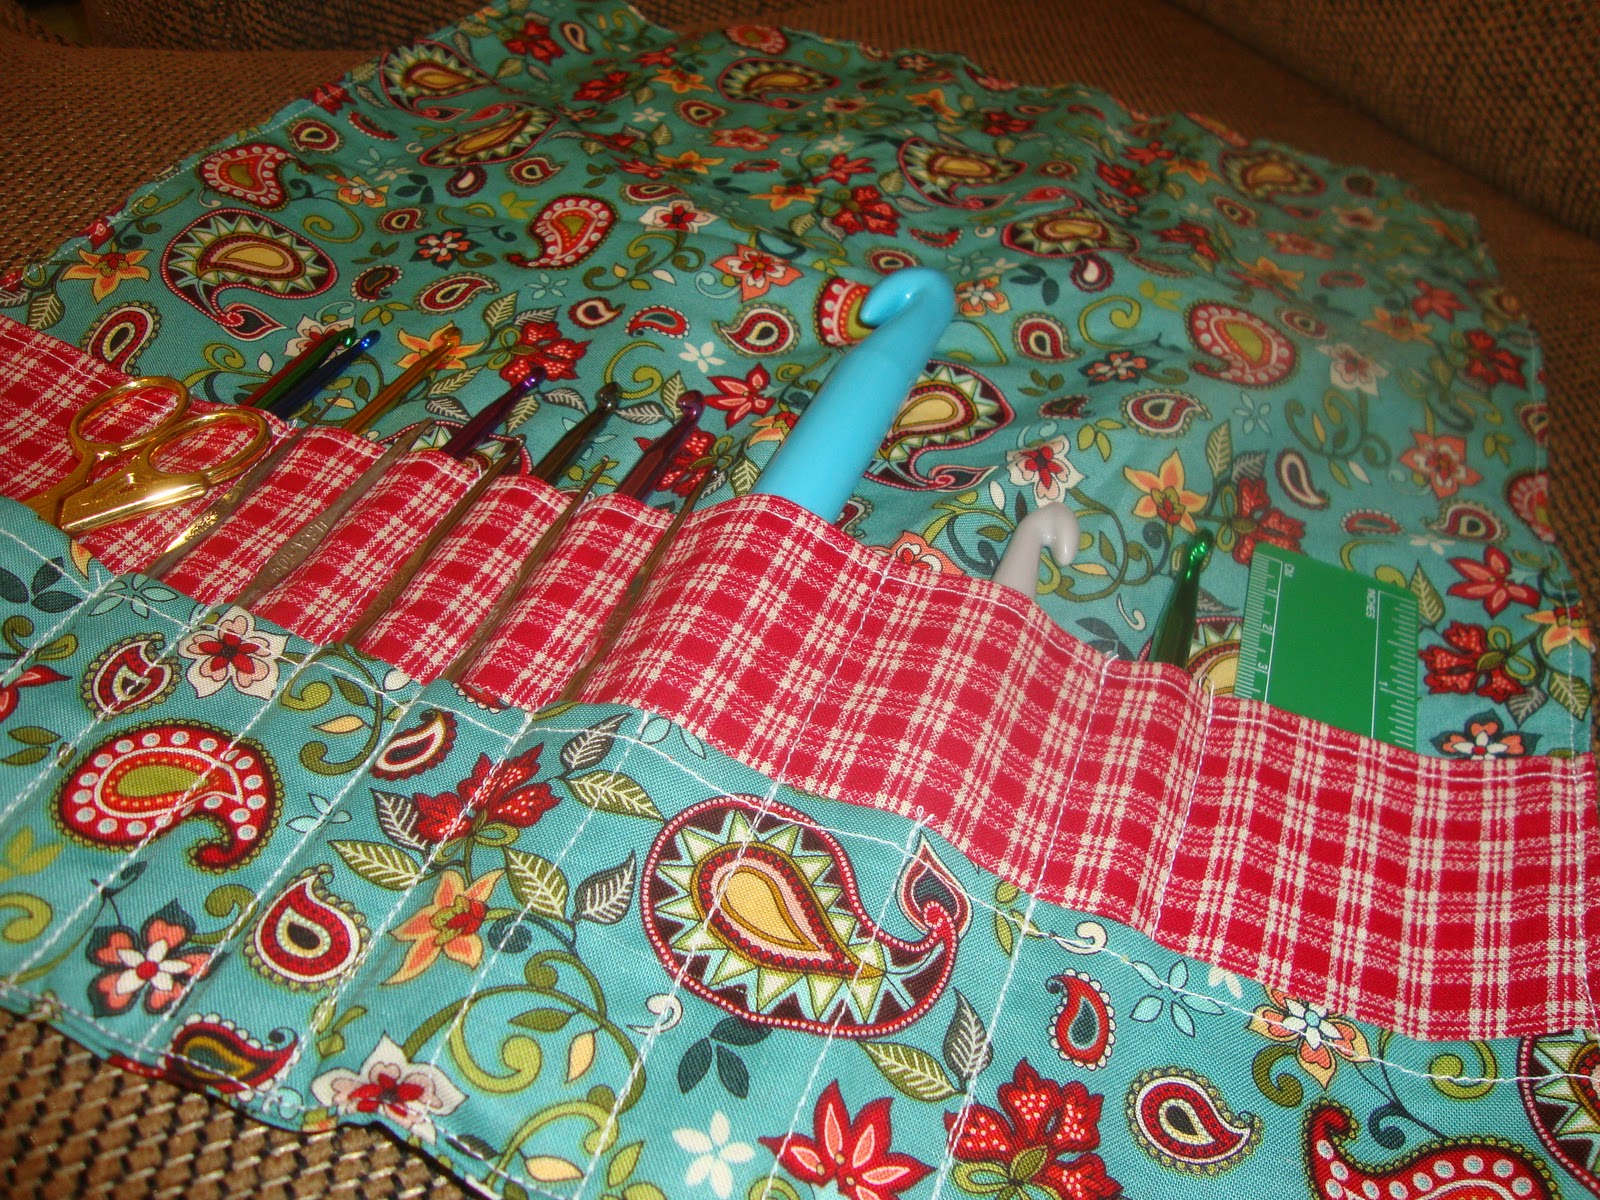 Bethany Sew-and-Sew: Crochet Hook Storage Problem--Make a Roll!